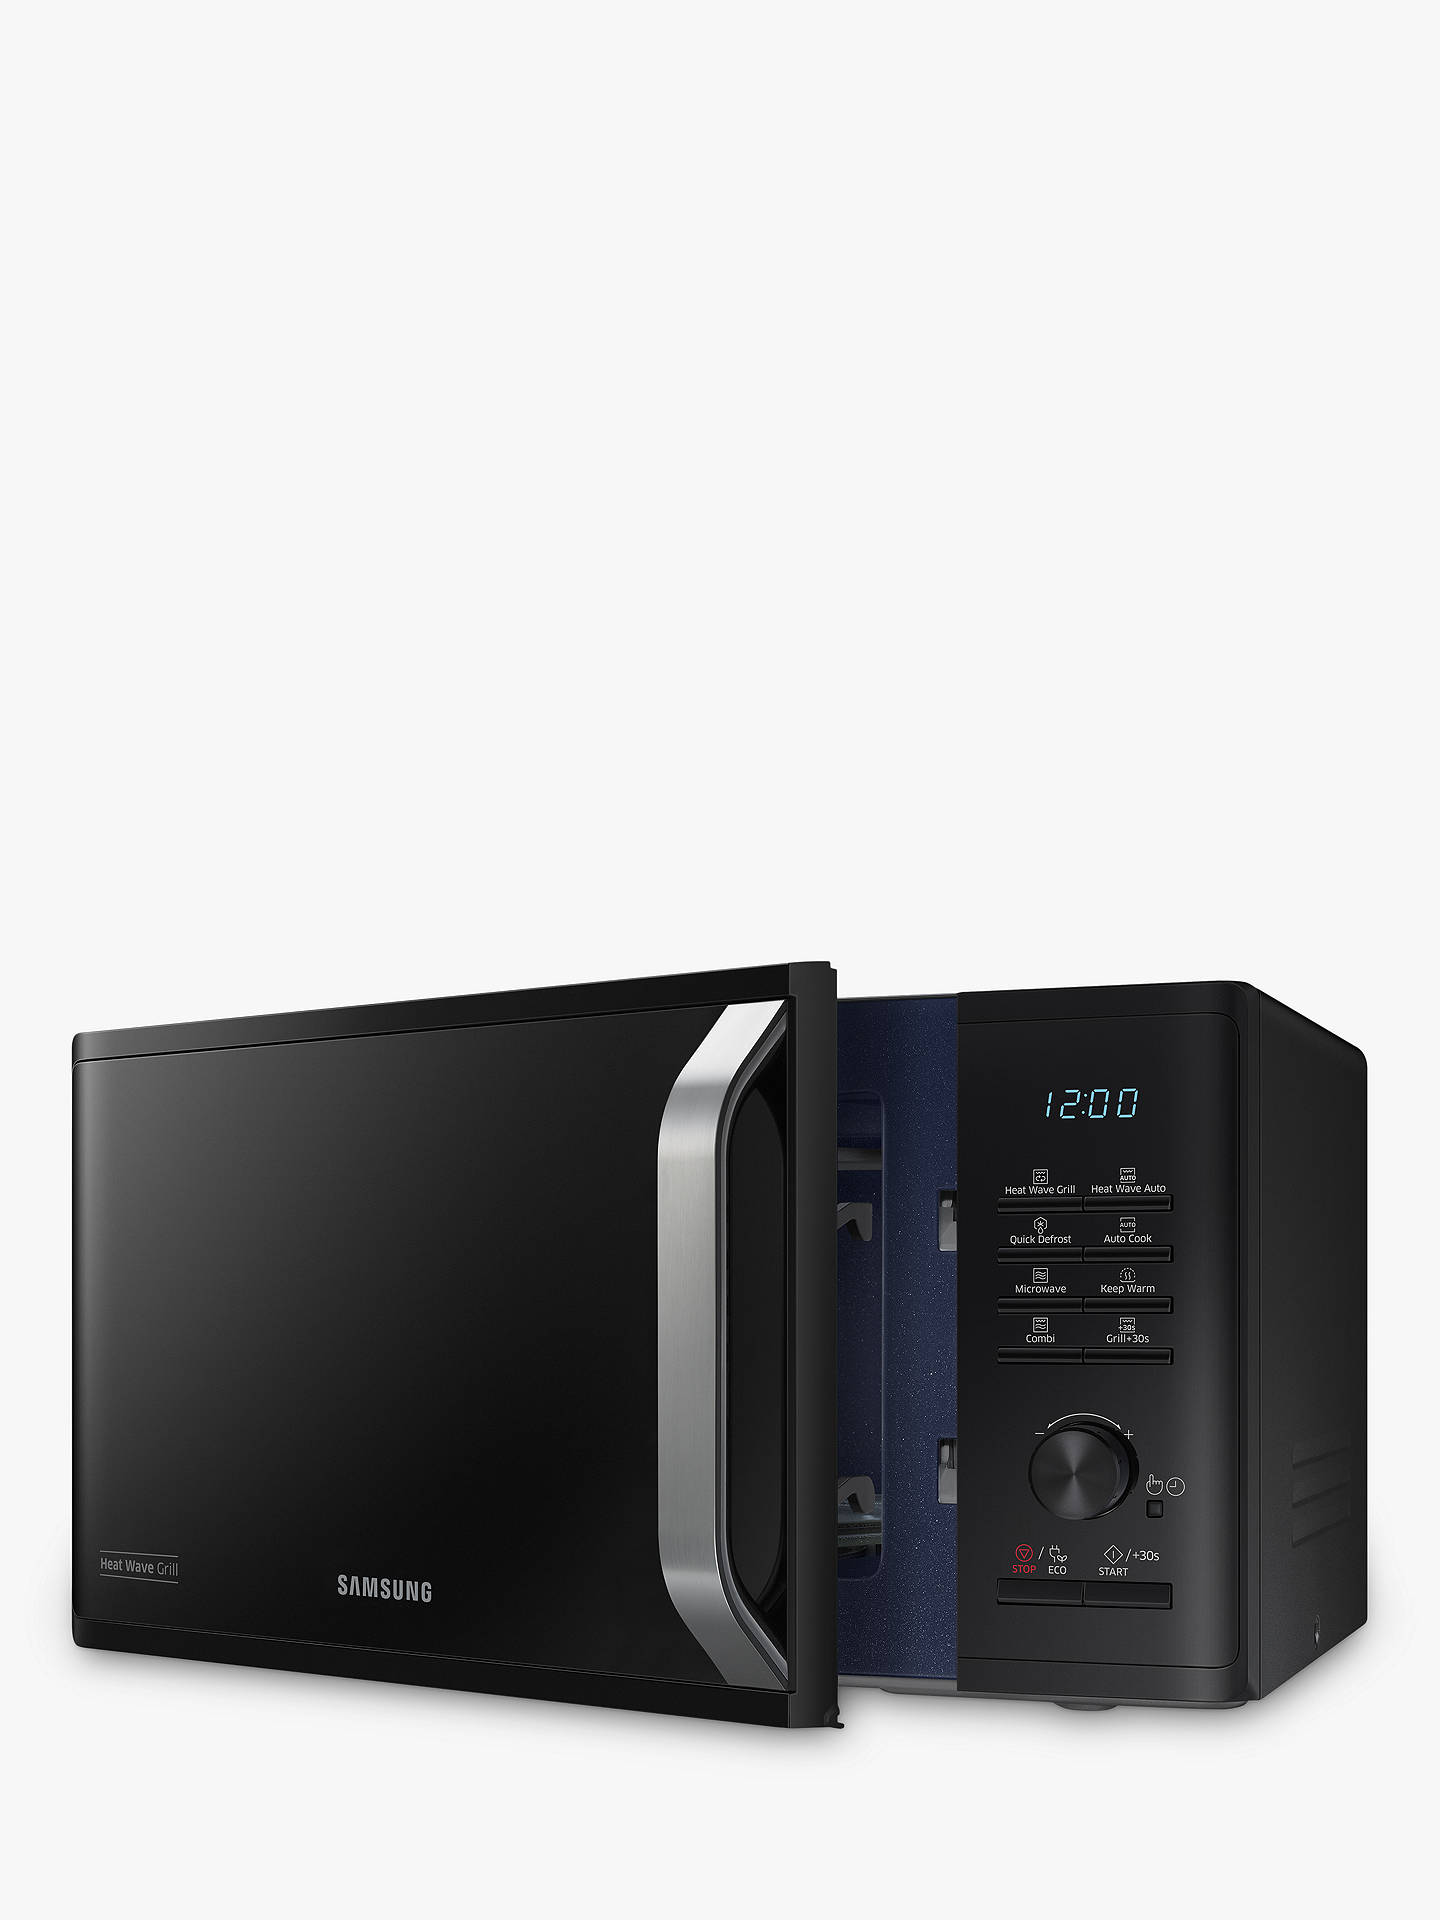 BuySamsung MG23K3575AK/EU Freestanding Microwave Oven with Grill, Black Online at johnlewis.com